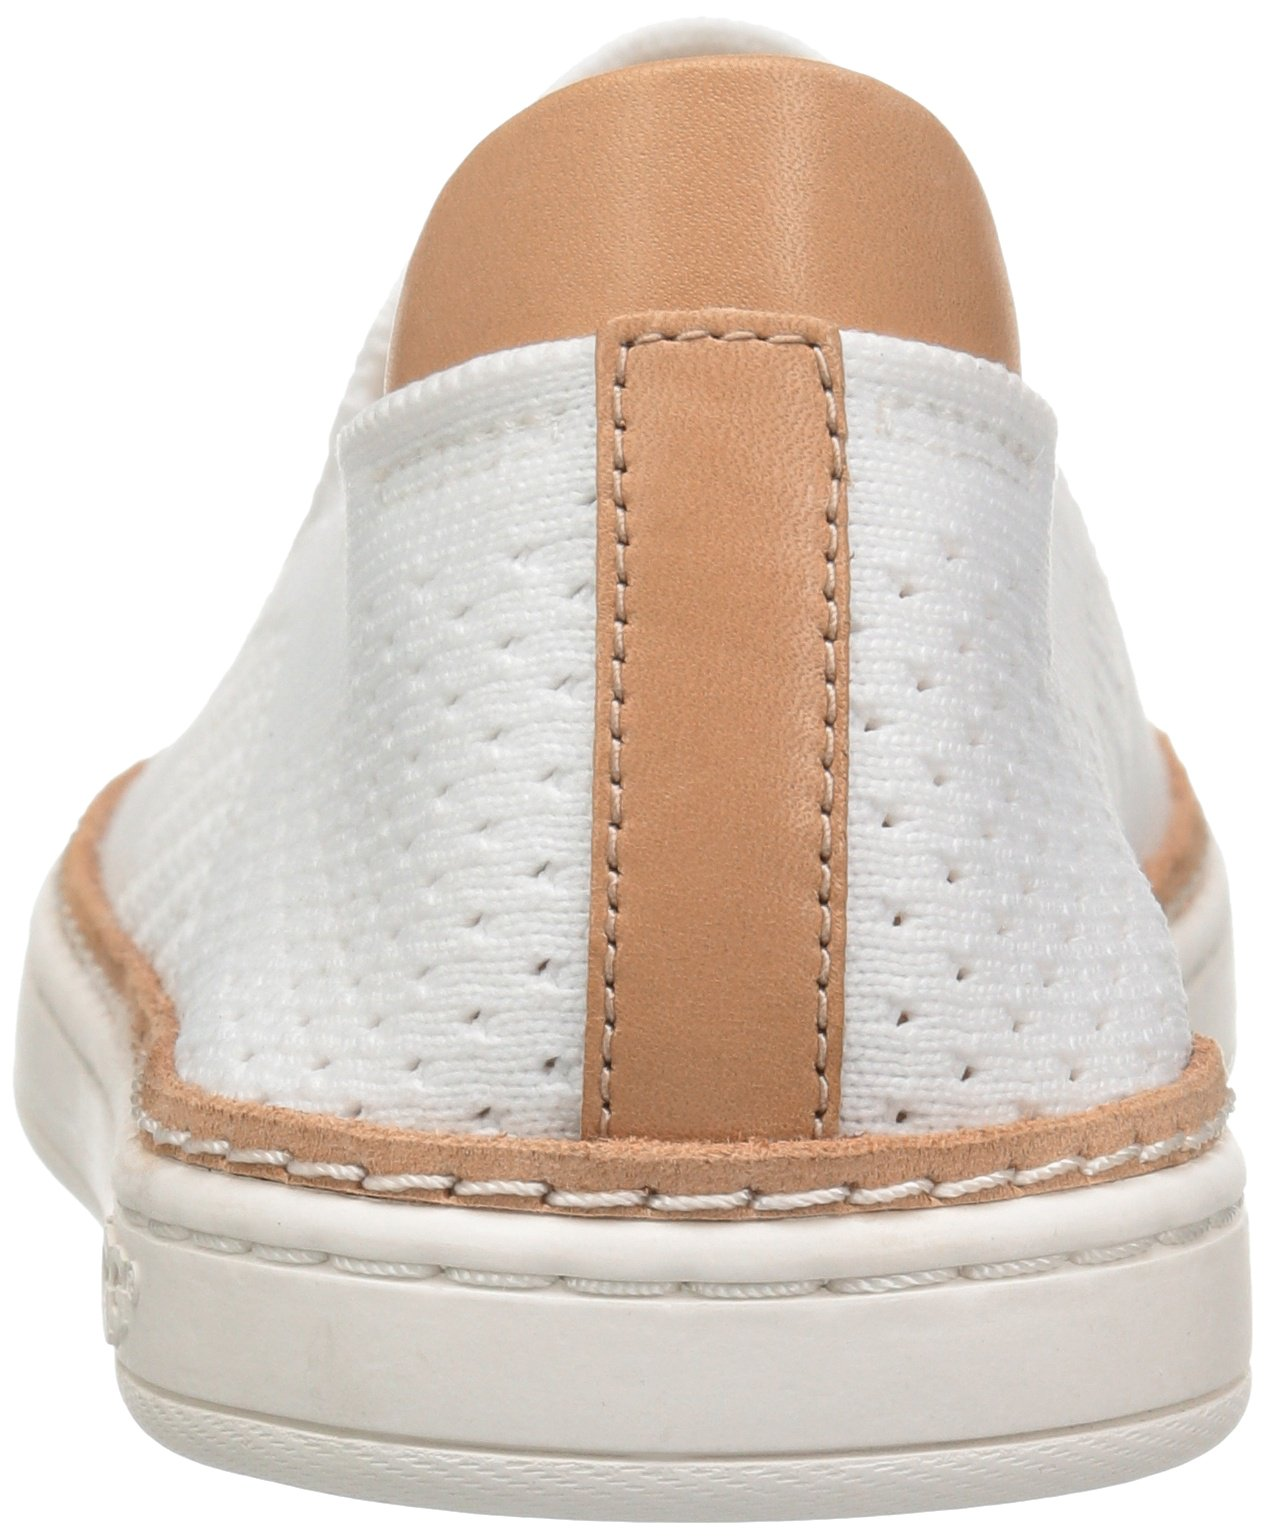 1035f5f714b UGG Sammy Knit and Leather White Fashion Sneaker Tennis Shoe Size 5.5 US